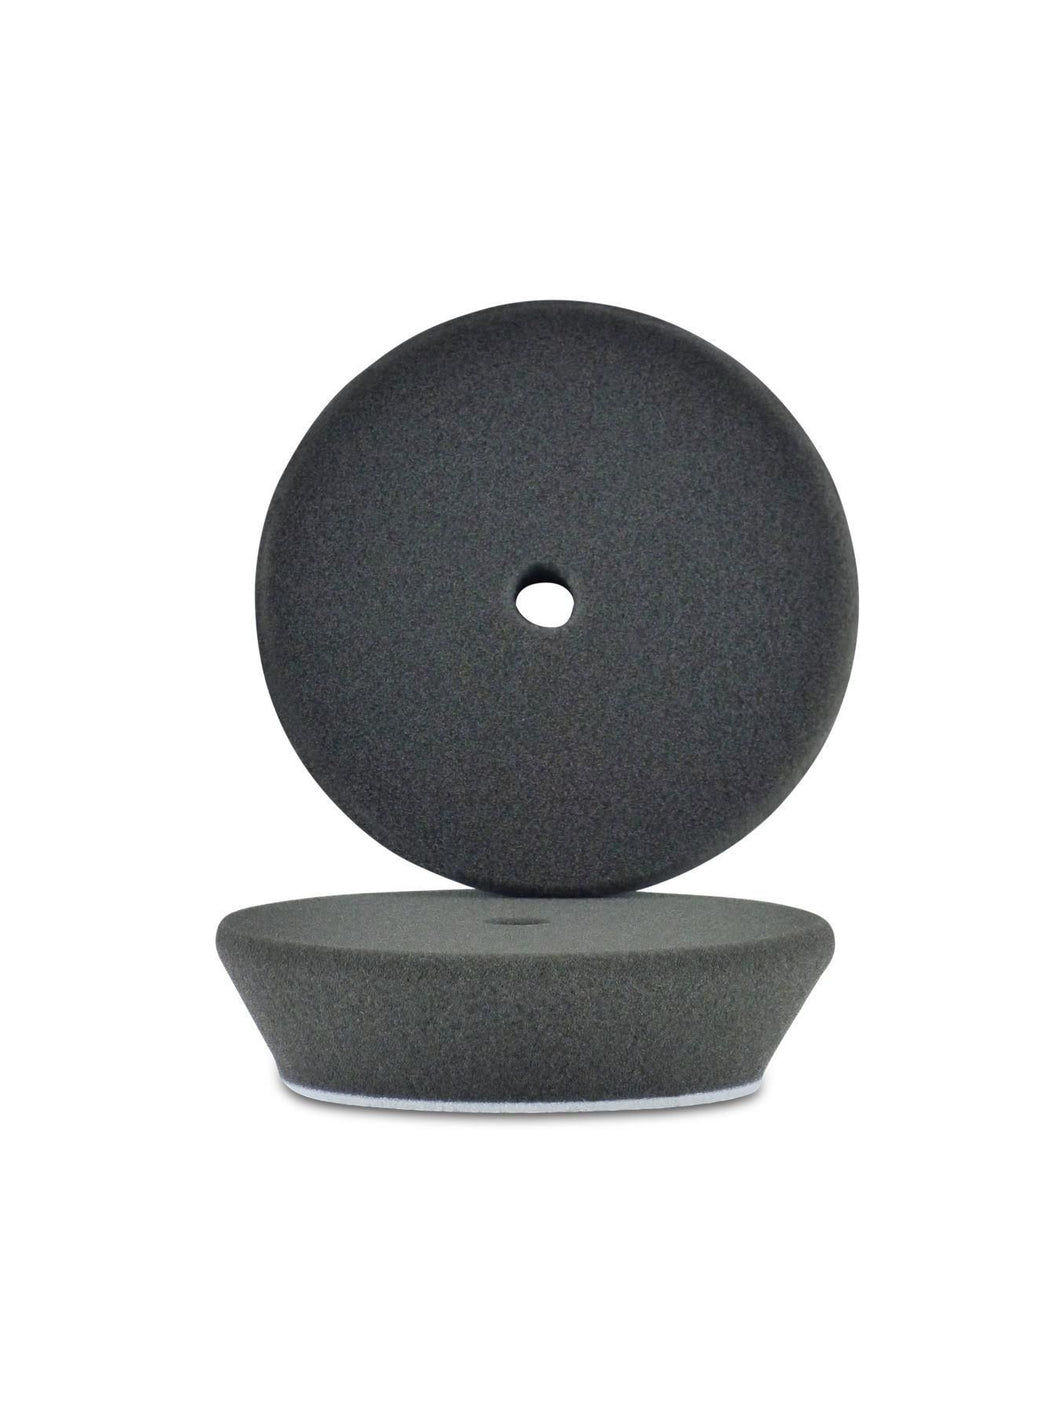 Krystal Kleen Detail - STORM PRO Polishing Pad (Black Extra Fine Finishing Pad)